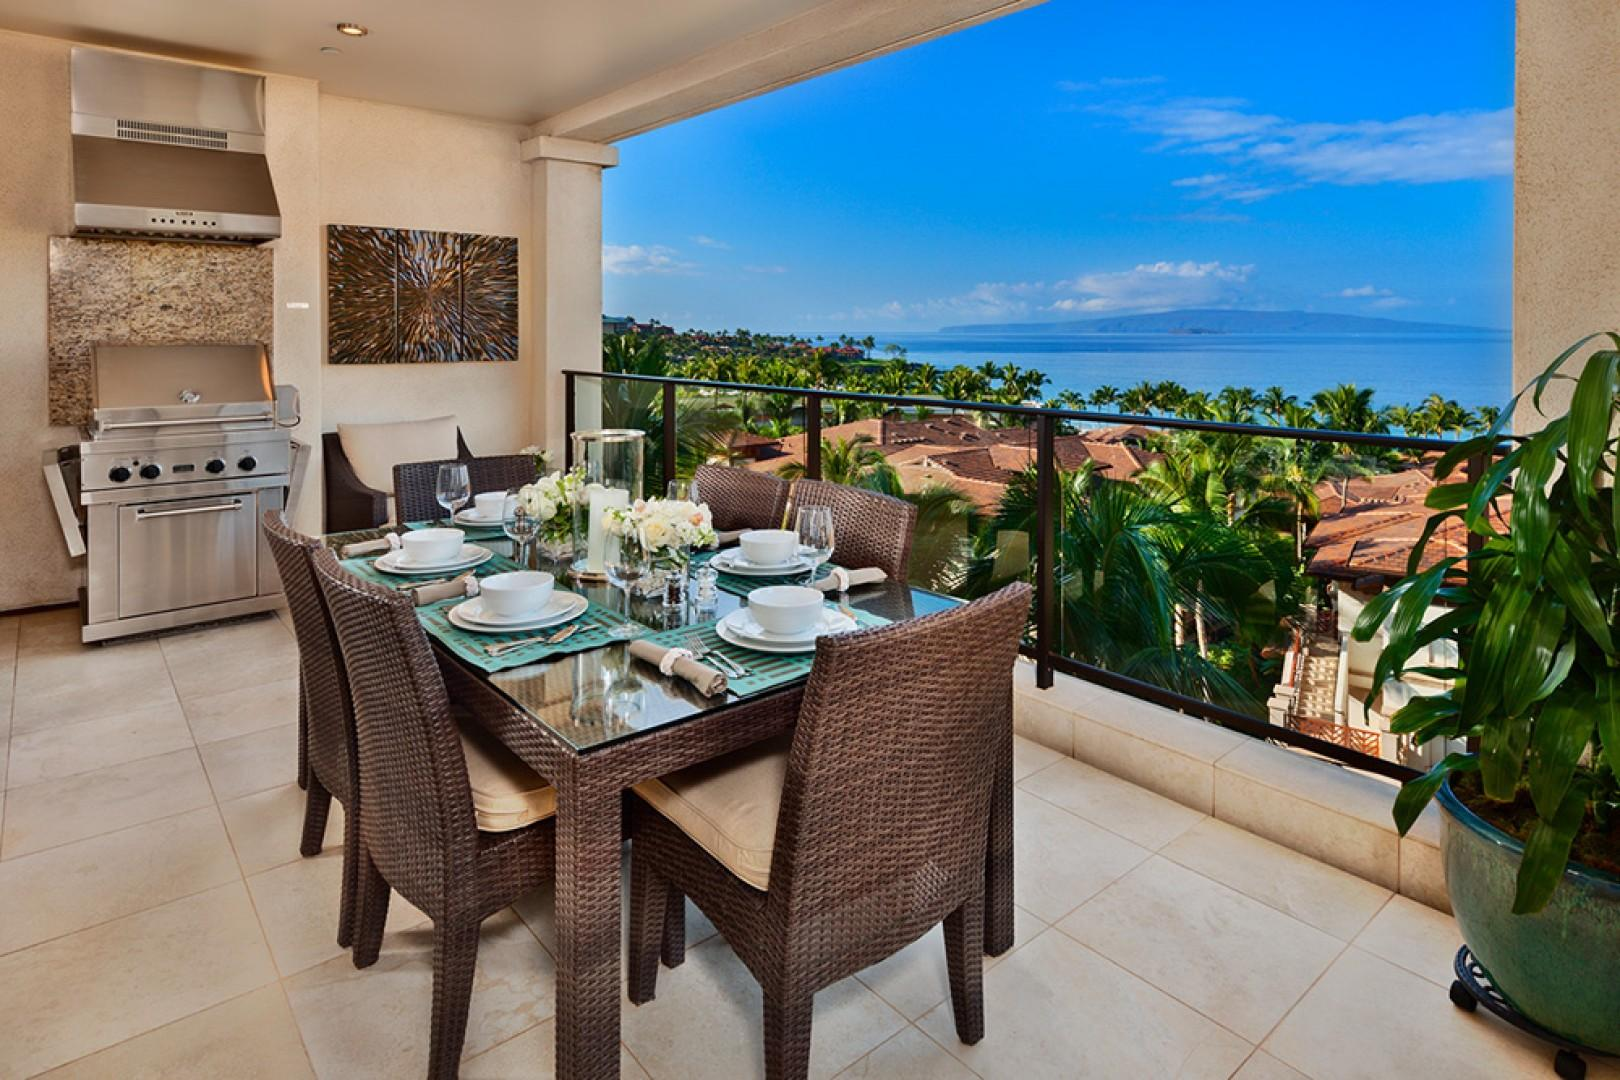 Ocean View Dining Terrace for 6 with BBQ - Panoramic Ocean Views from J405 Sea Breeze Suite